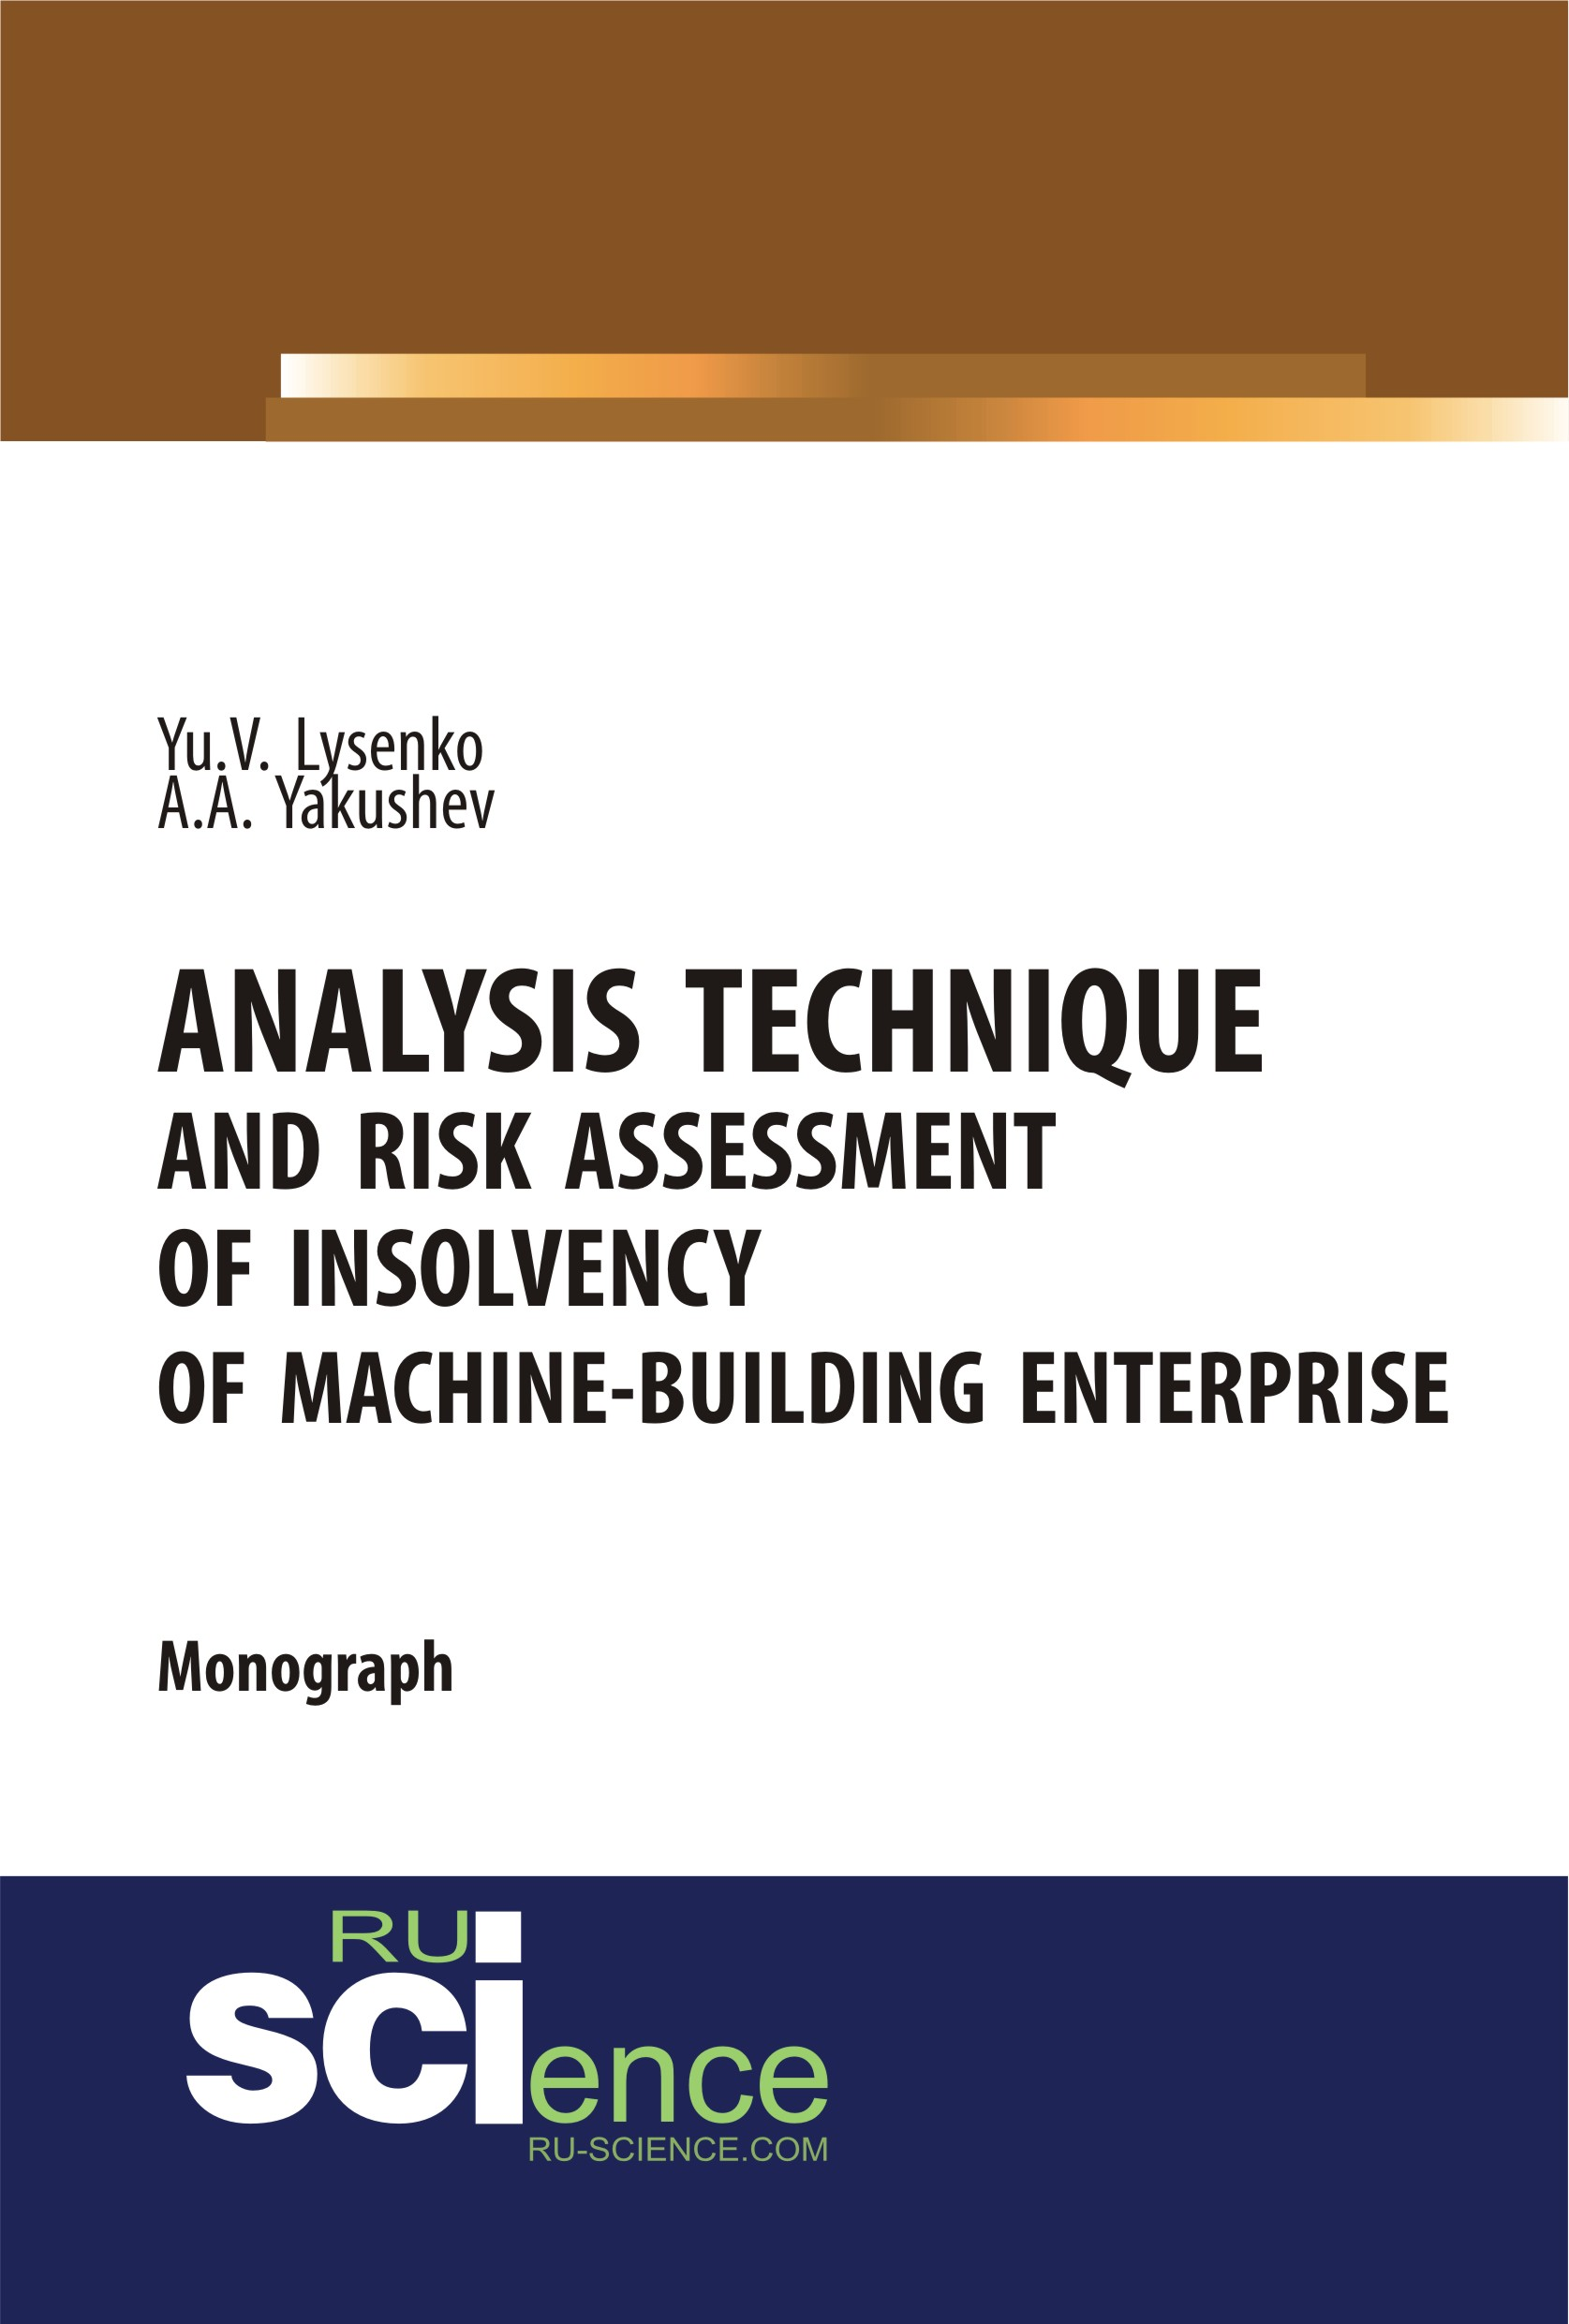 Analysis technique and risk assessment of insolvency of machine-building enterprise